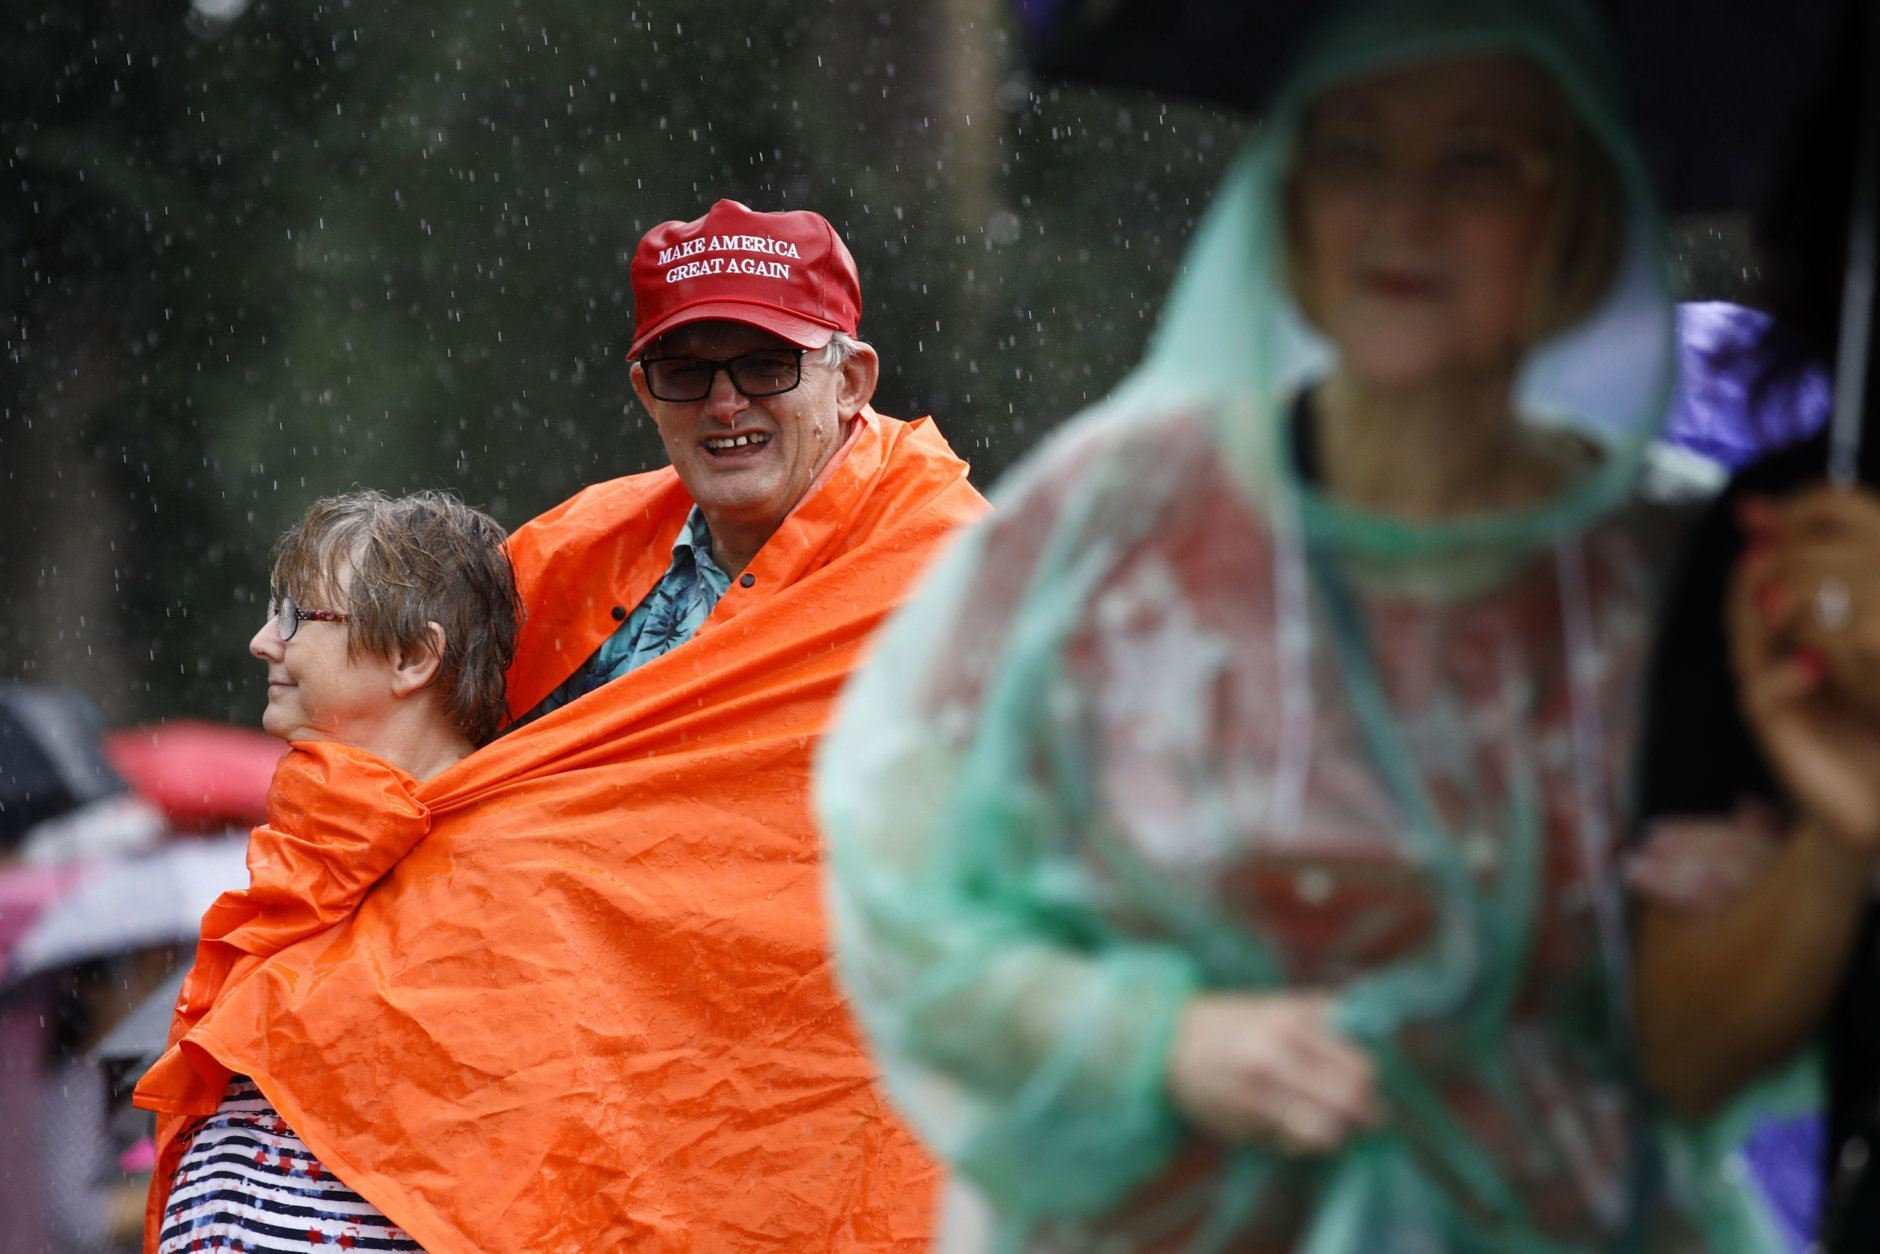 John Hood, back right, waits out rainfall alongside his wife, Kathy, before Independence Day celebrations, Thursday, July 4, 2019, on the National Mall in Washington. (AP Photo/Patrick Semansky)